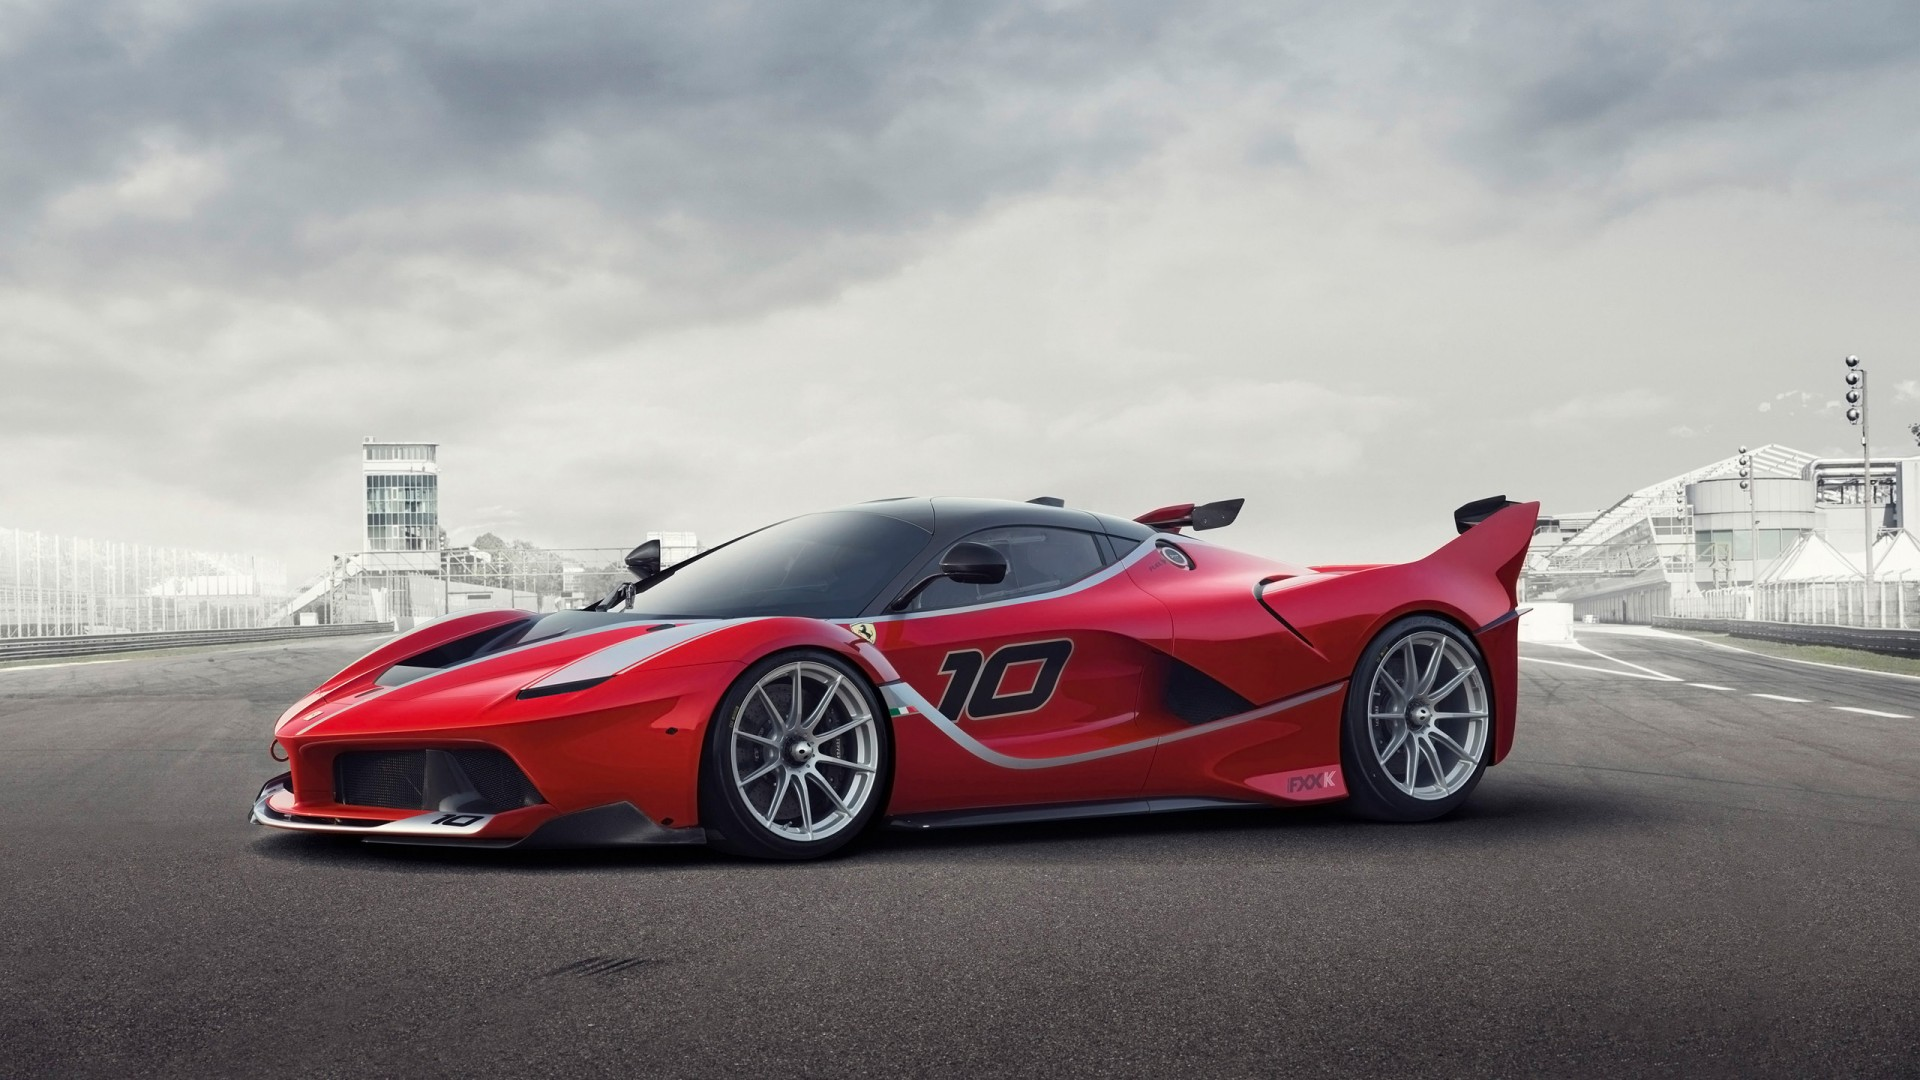 High Quality Car Pictures And Car Wallpapers 2015 Ferrari Fxx K 2 Wallpaper Hd Car Wallpapers Id 4980